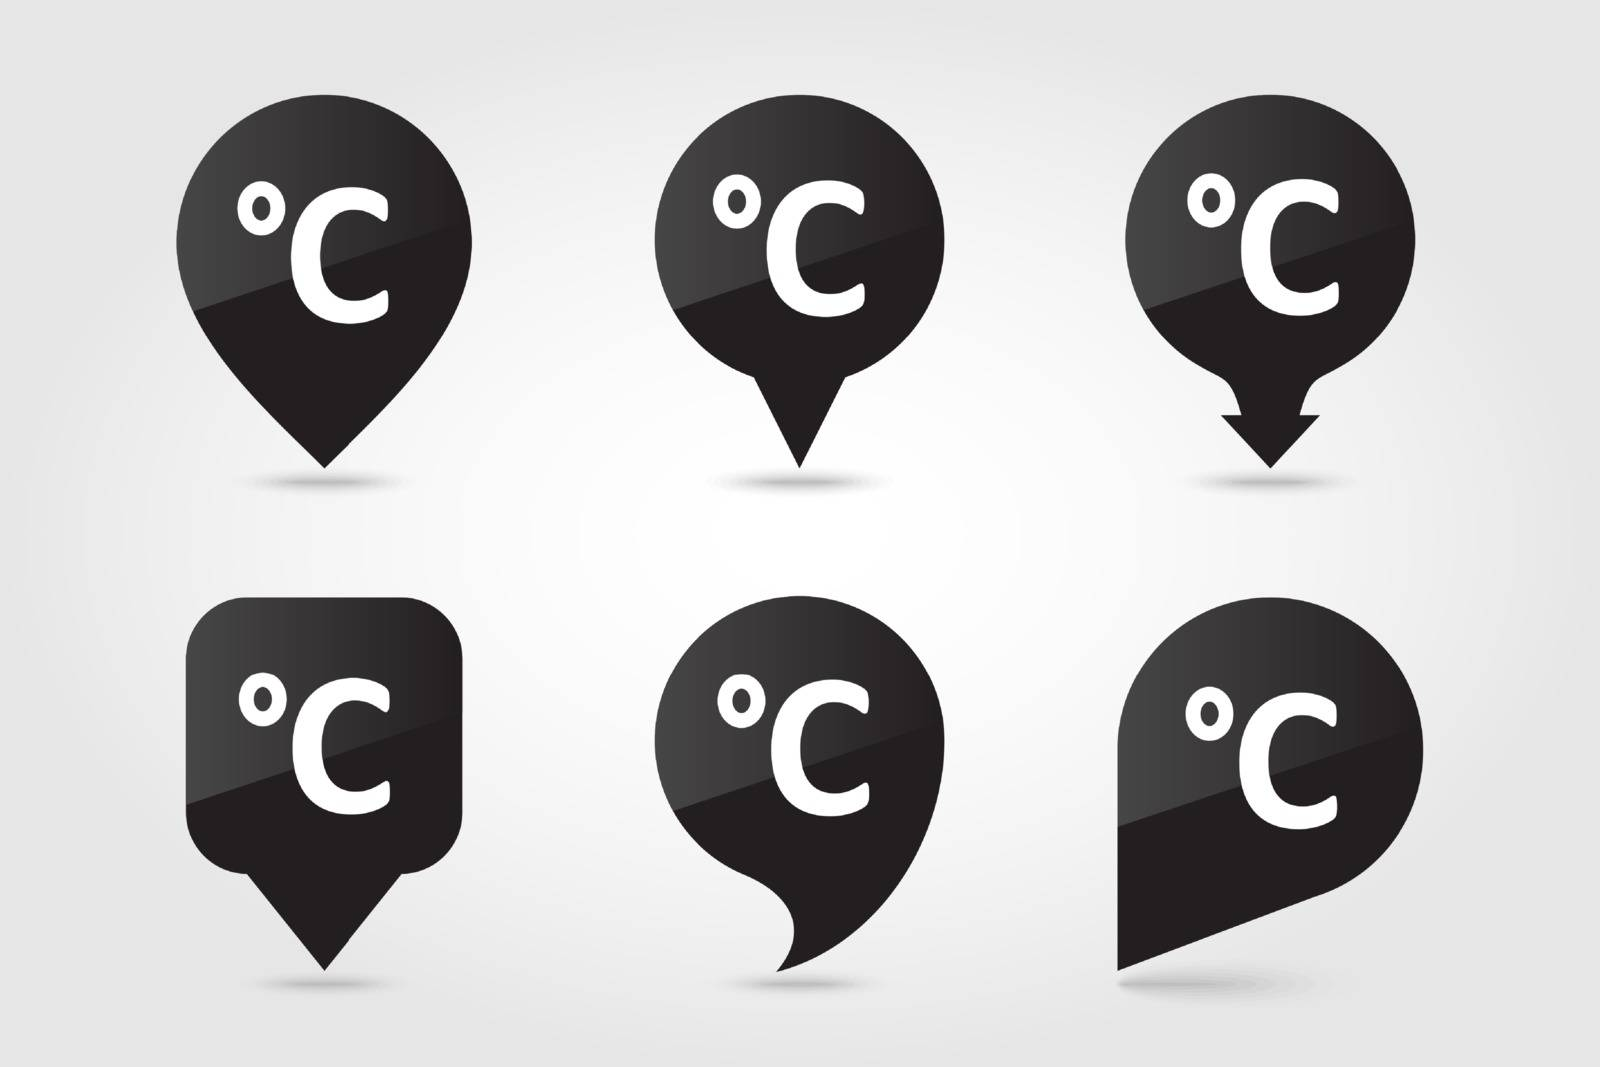 Degrees Celsius outline pin map icon. Map pointer. Map markers. Meteorology. Weather. Vector illustration eps 10